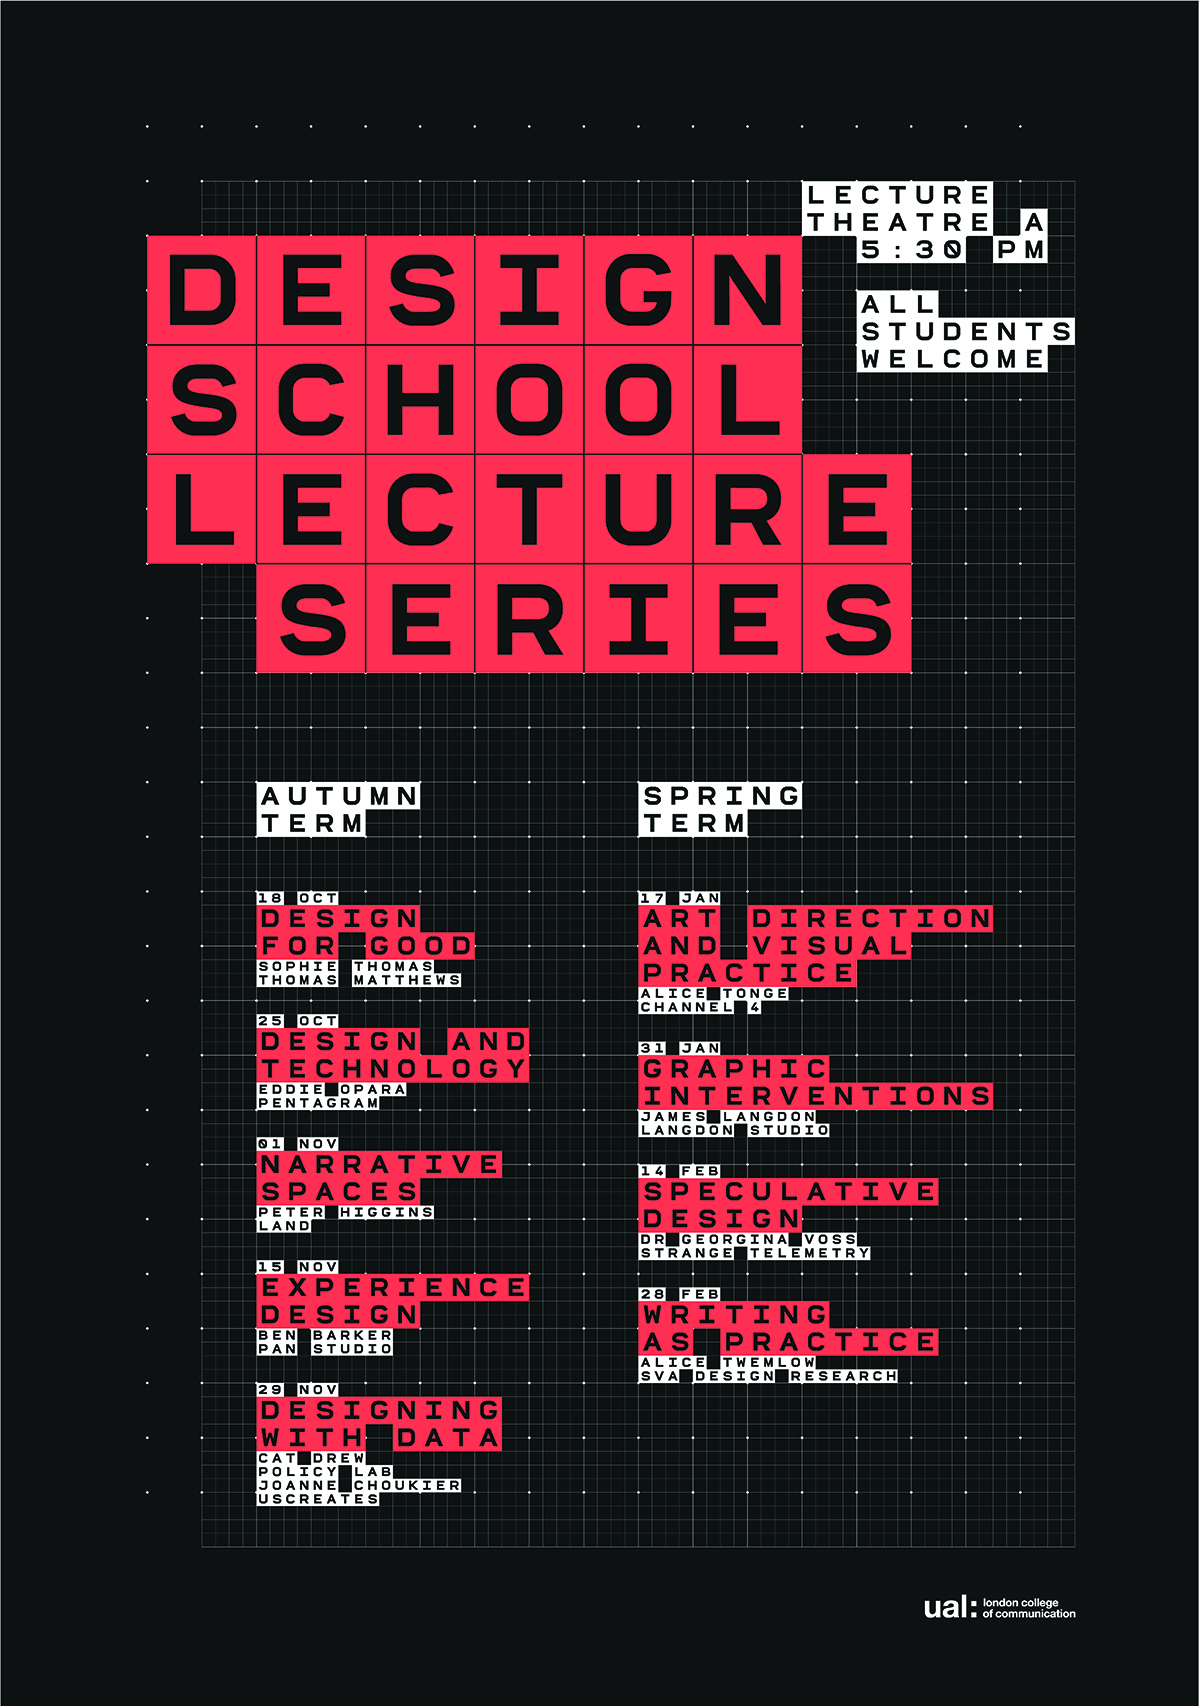 design-school-lecture-series_sml